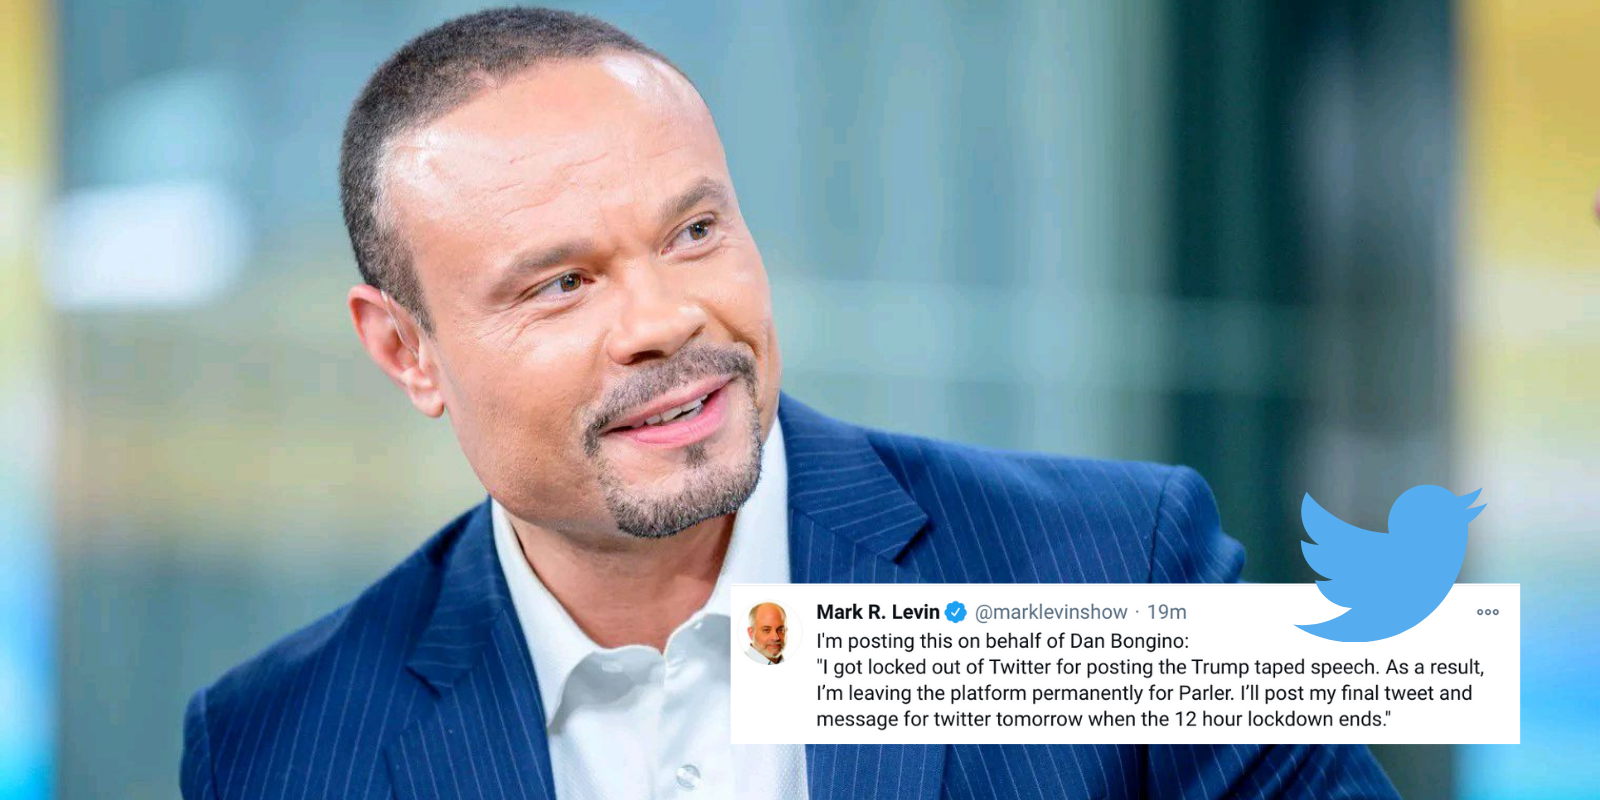 BREAKING: Twitter suspends prominent conservative Dan Bongino for sharing Trump's call to end violence